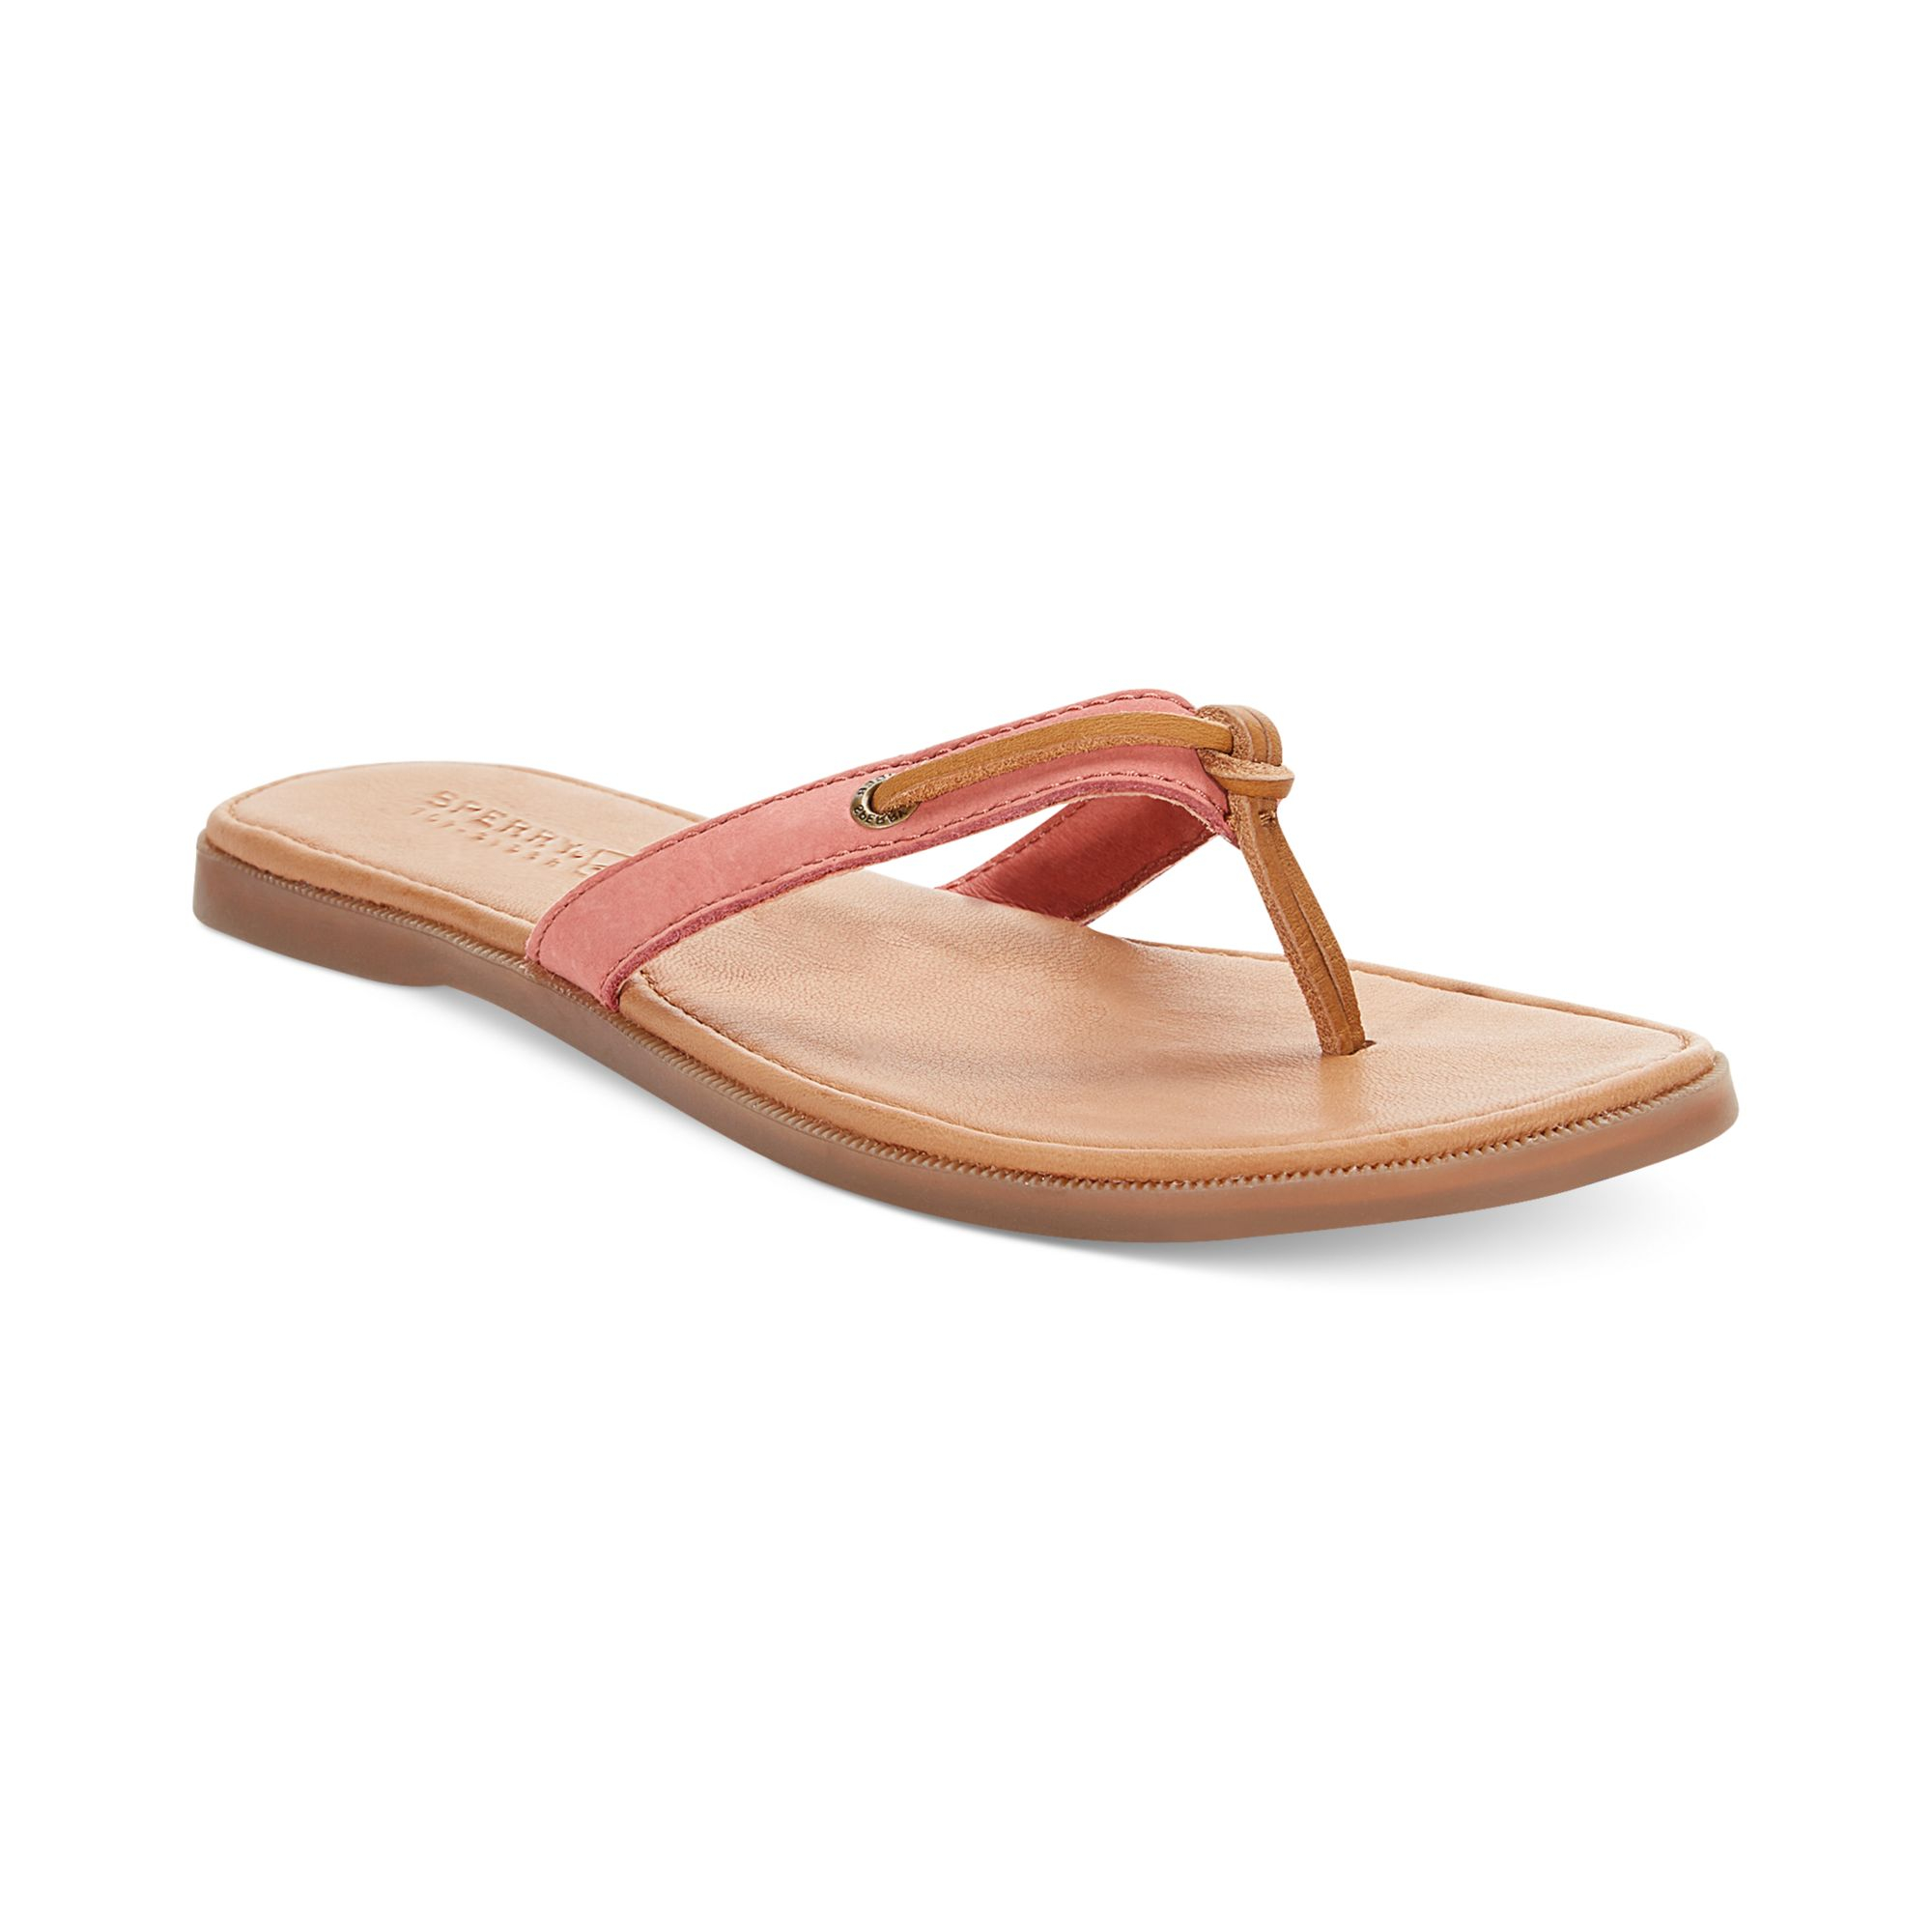 86f5e77014ebc3 Lyst - Sperry Top-Sider Womens Calla Flip Flops in Brown